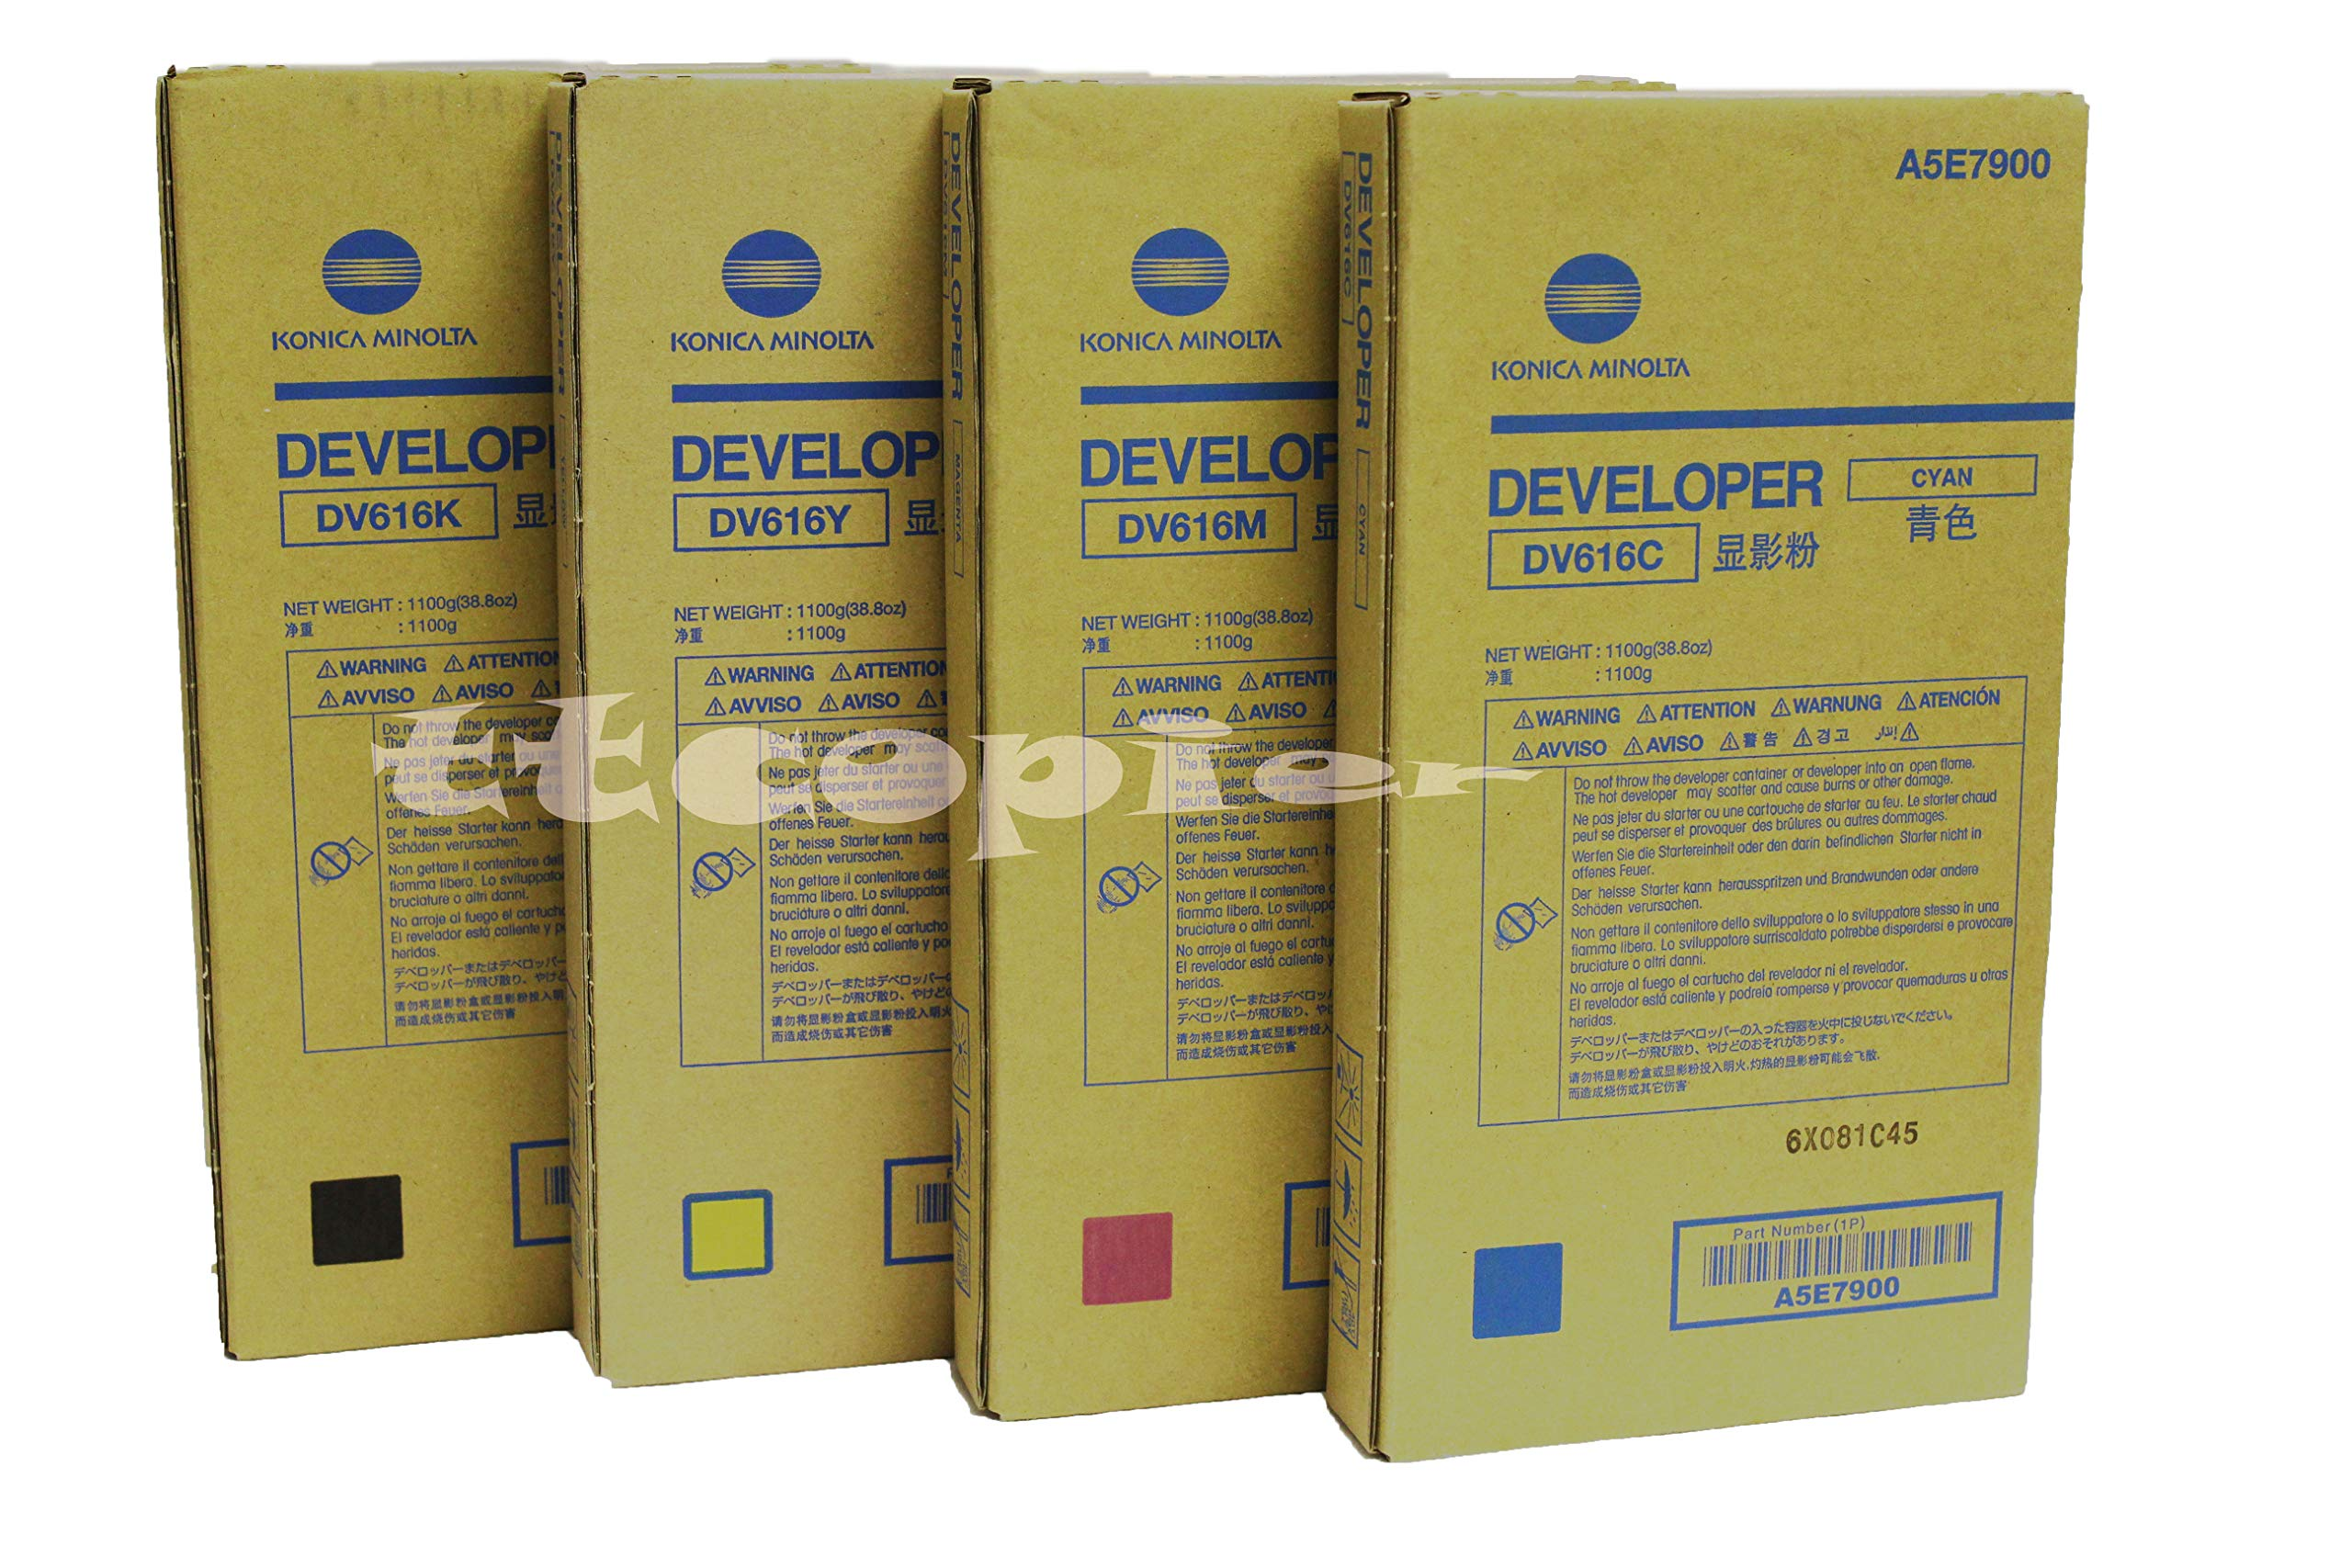 Genuine Konica Minolta (A5E7600 A5E7700 A5E7800 A5E7900), DV616 CMYK Developer for C1085 C1100